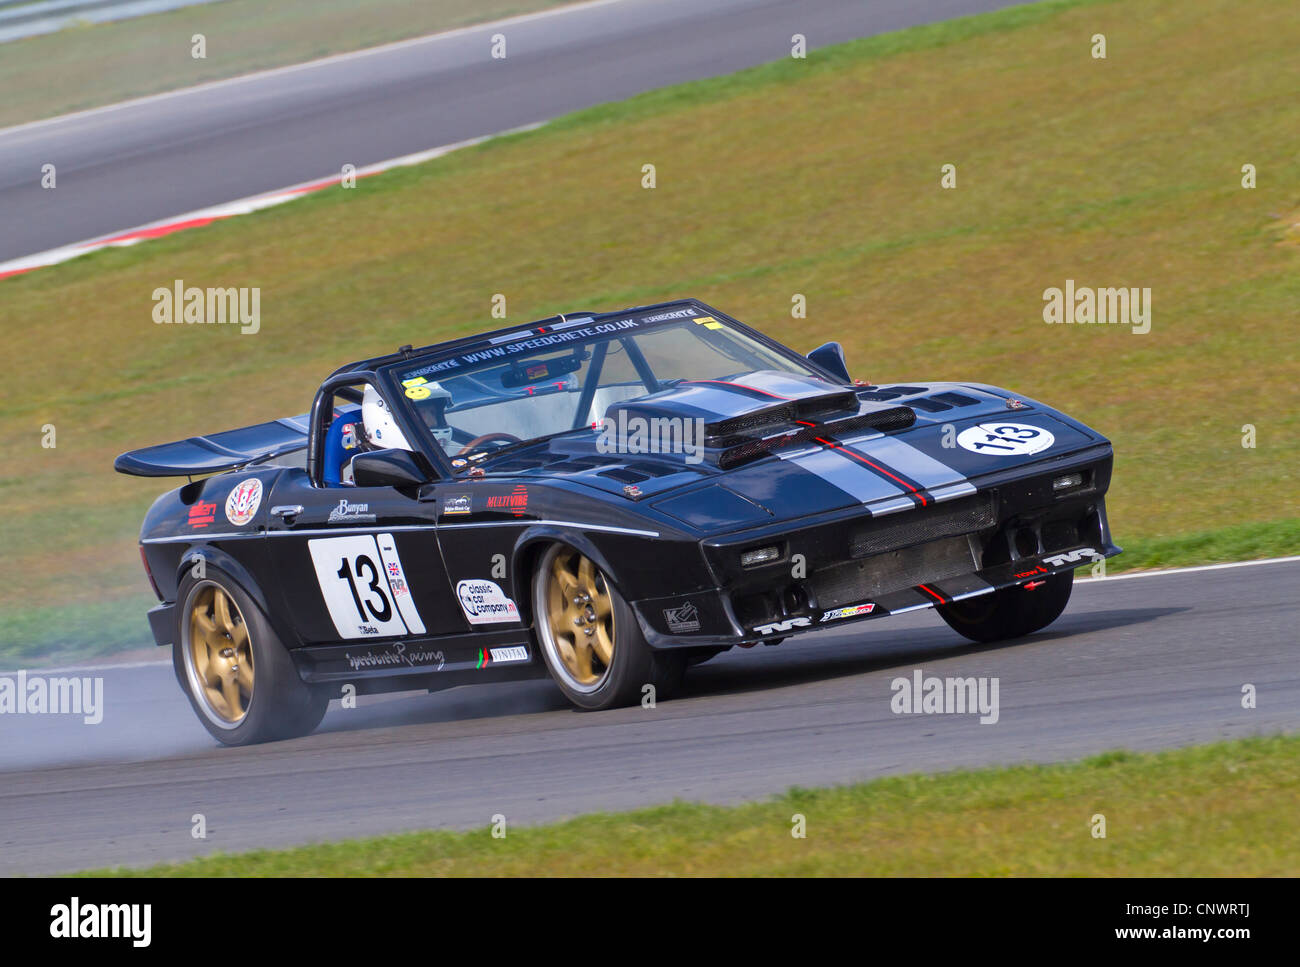 Peter Dod in a smoking TVR 450 during the CSCC HVRA V8 Challenge practice at Snetterton, Norfolk, UK. - Stock Image